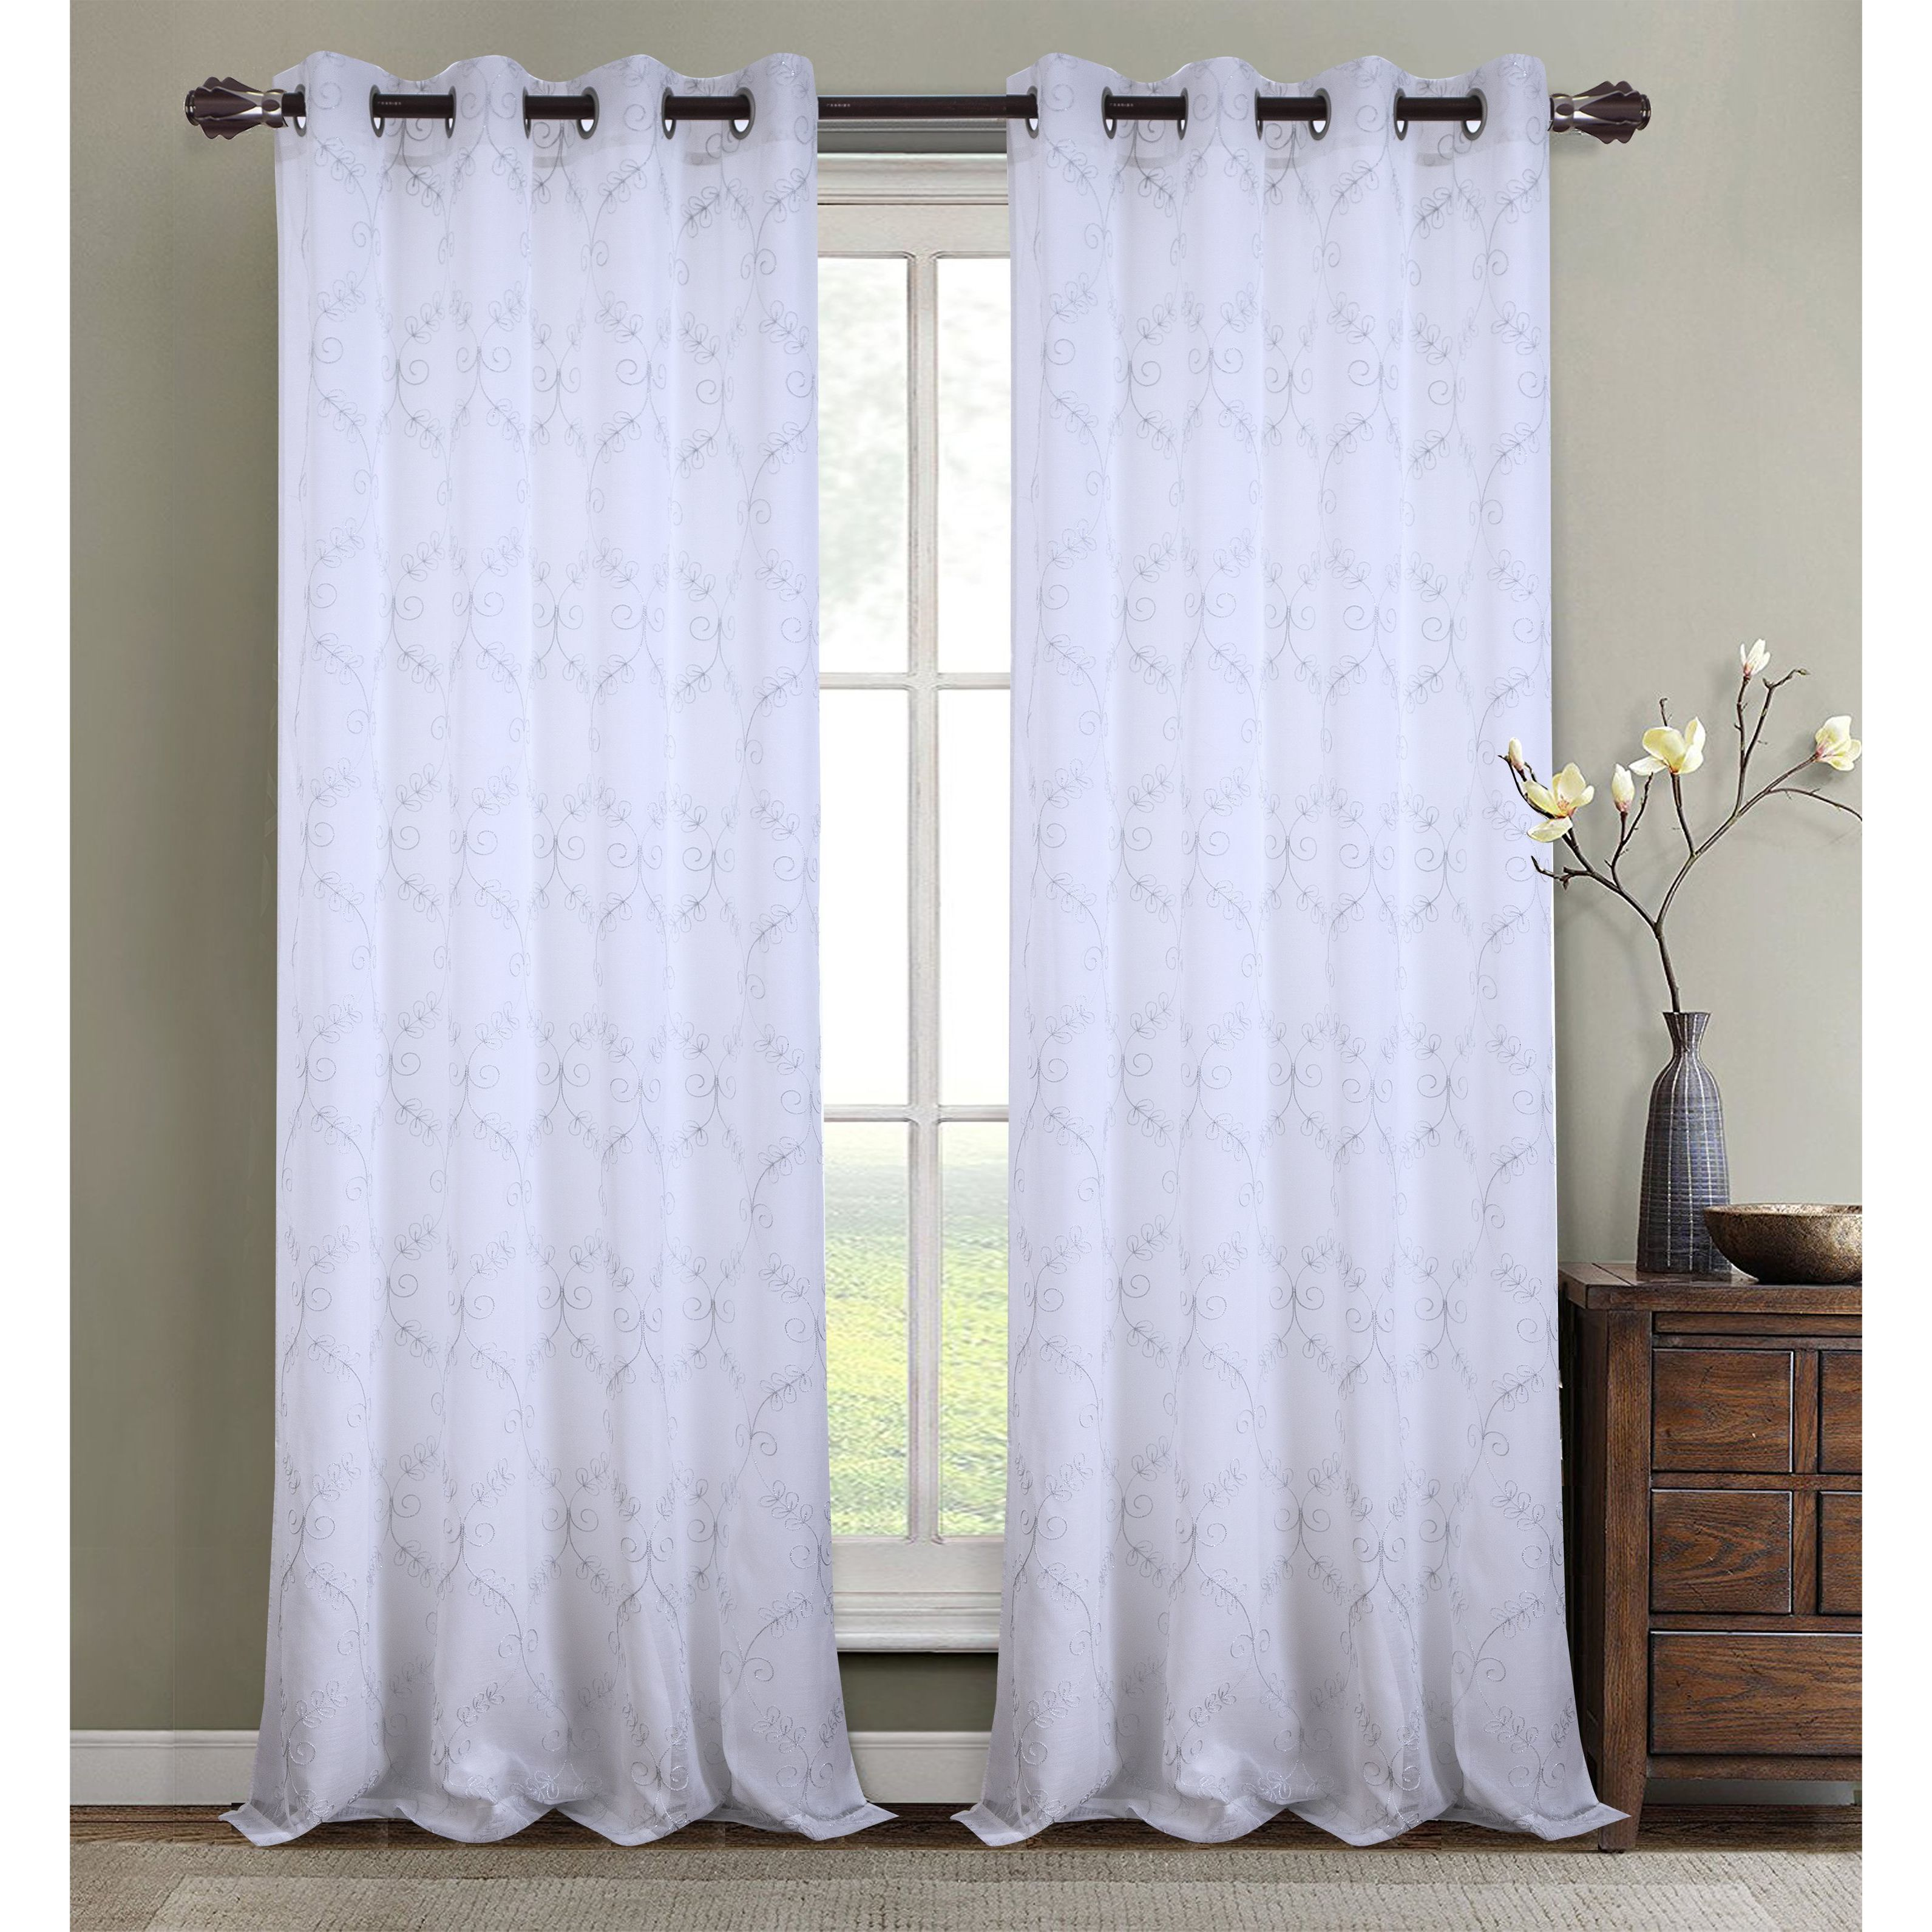 free over curtain garden elrene product overstock grommet home valance panel top luna faux shipping on orders linen